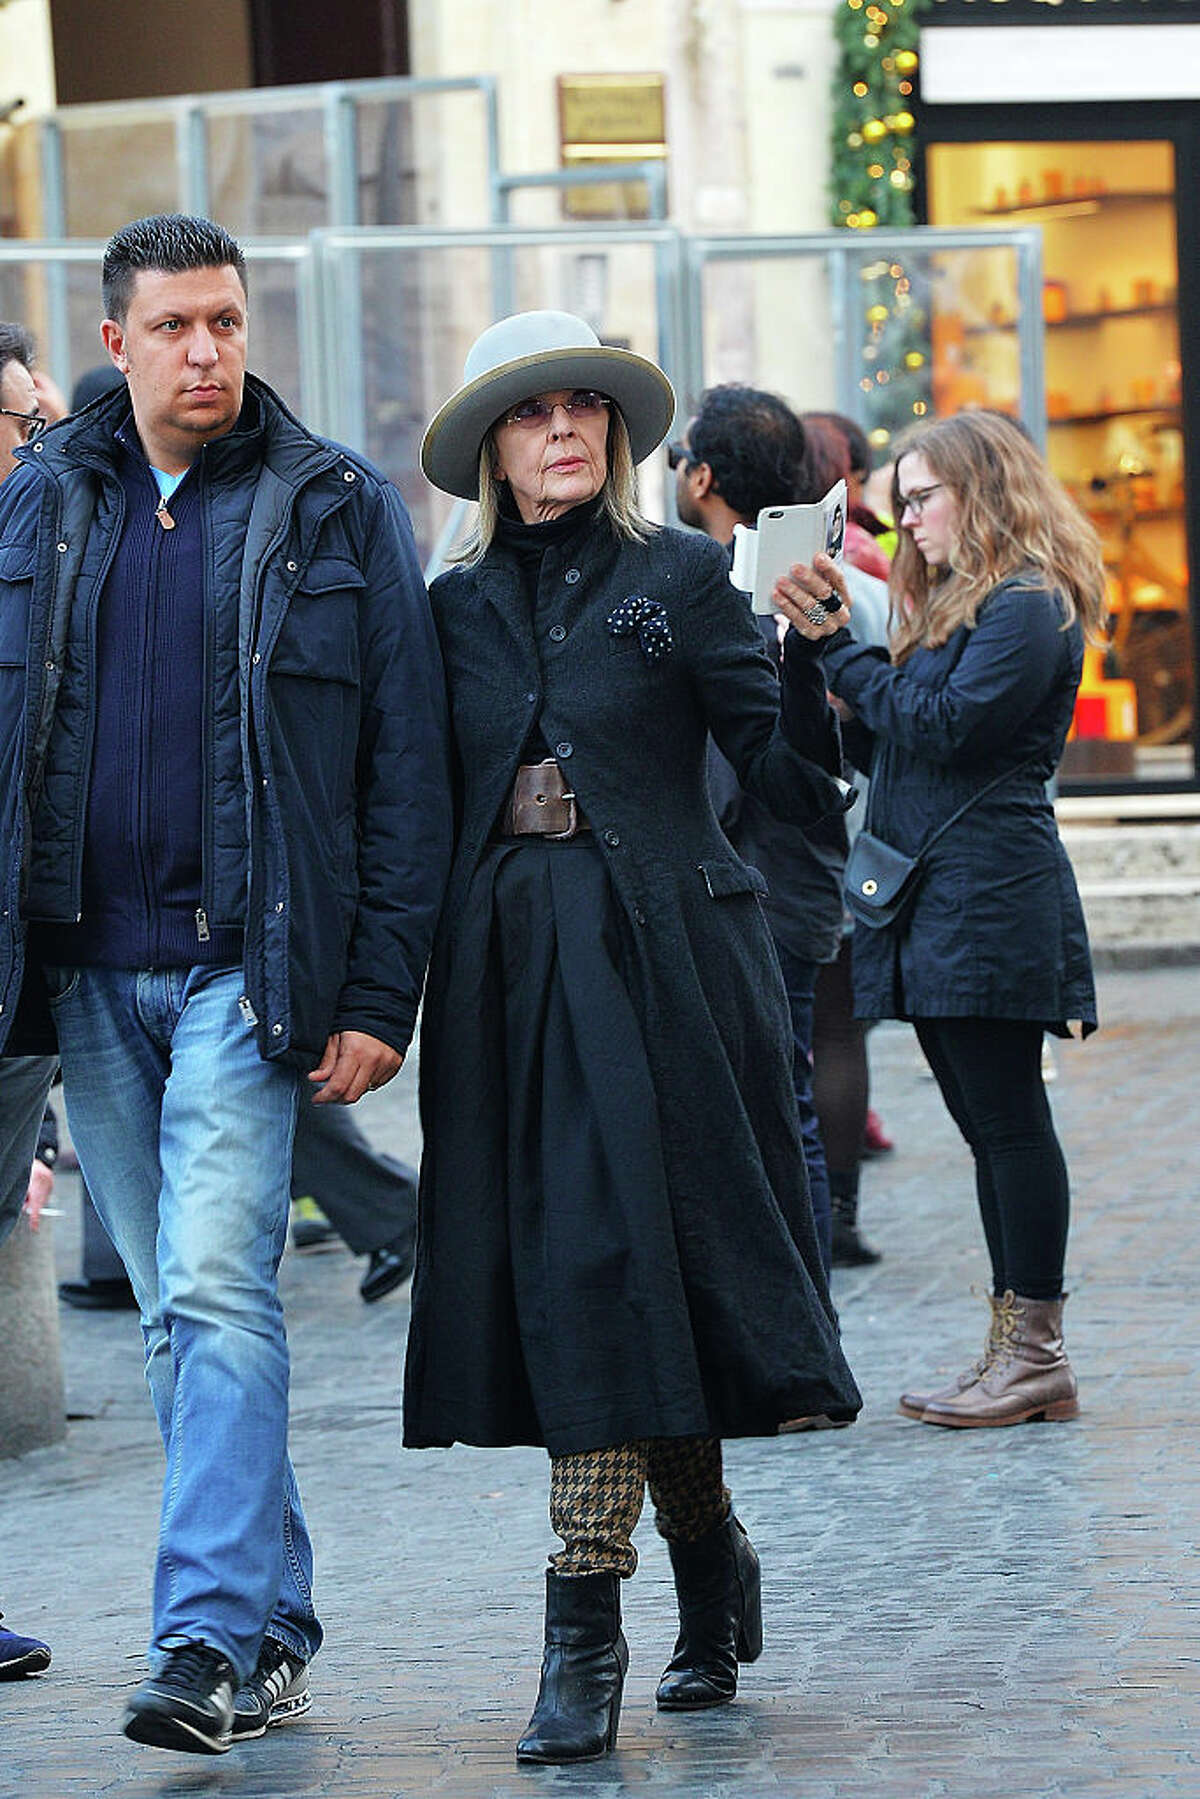 Diane Keaton is seen walking in Rome on December 9, 2015 in Rome, Italy. (Photo by Agostino Fabio/GC Images)